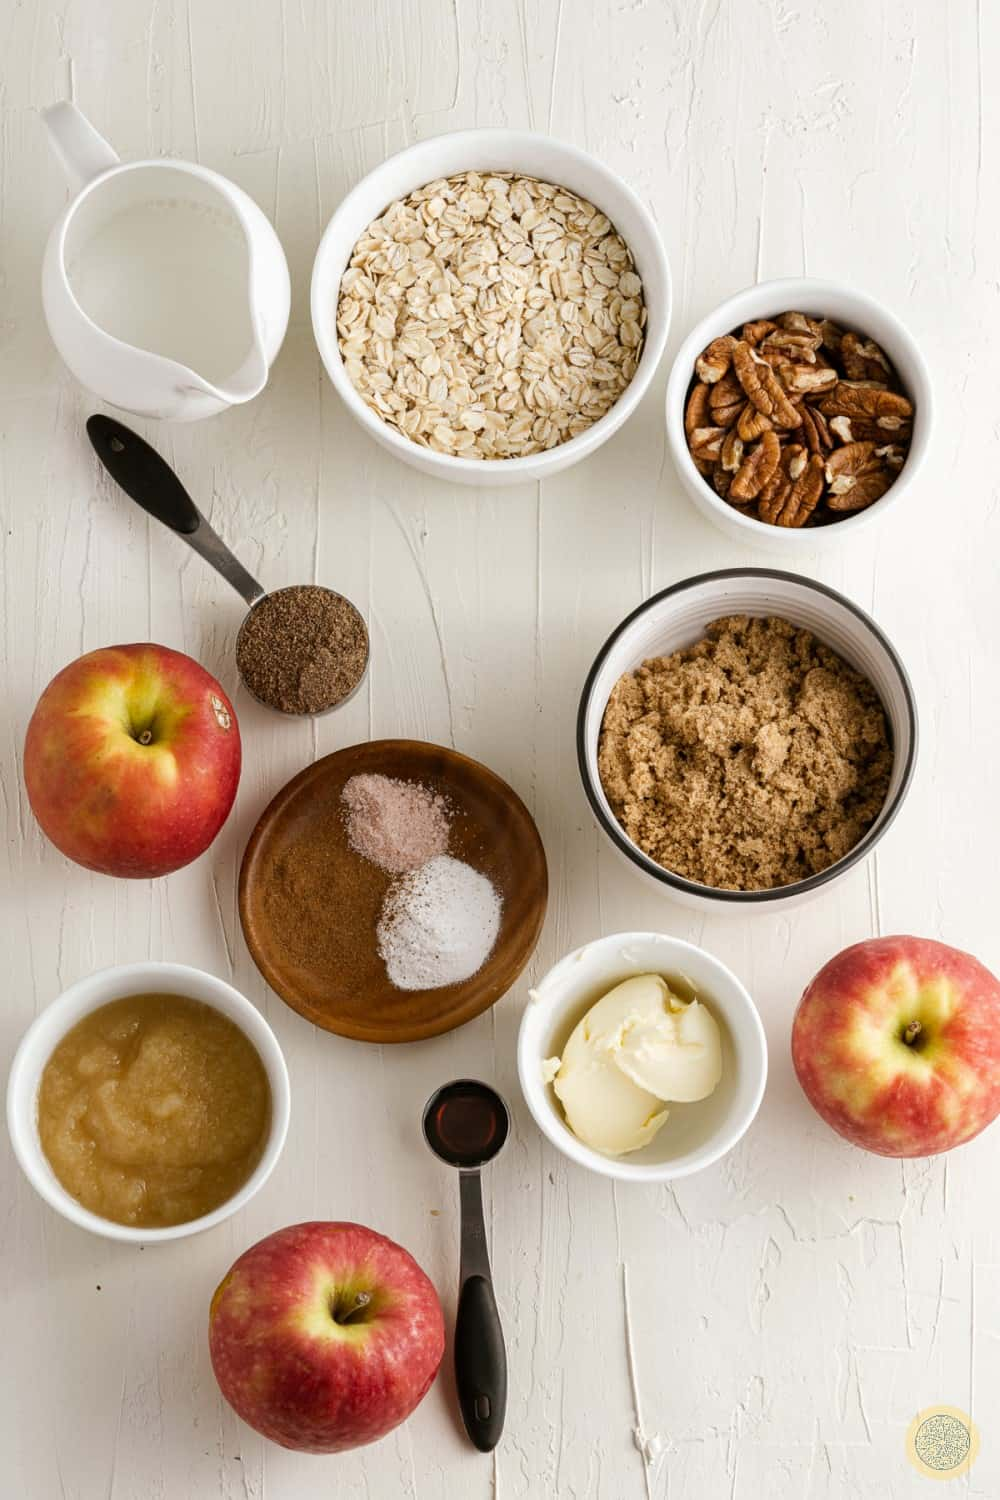 Ingredients you'll need for baked oatmeal